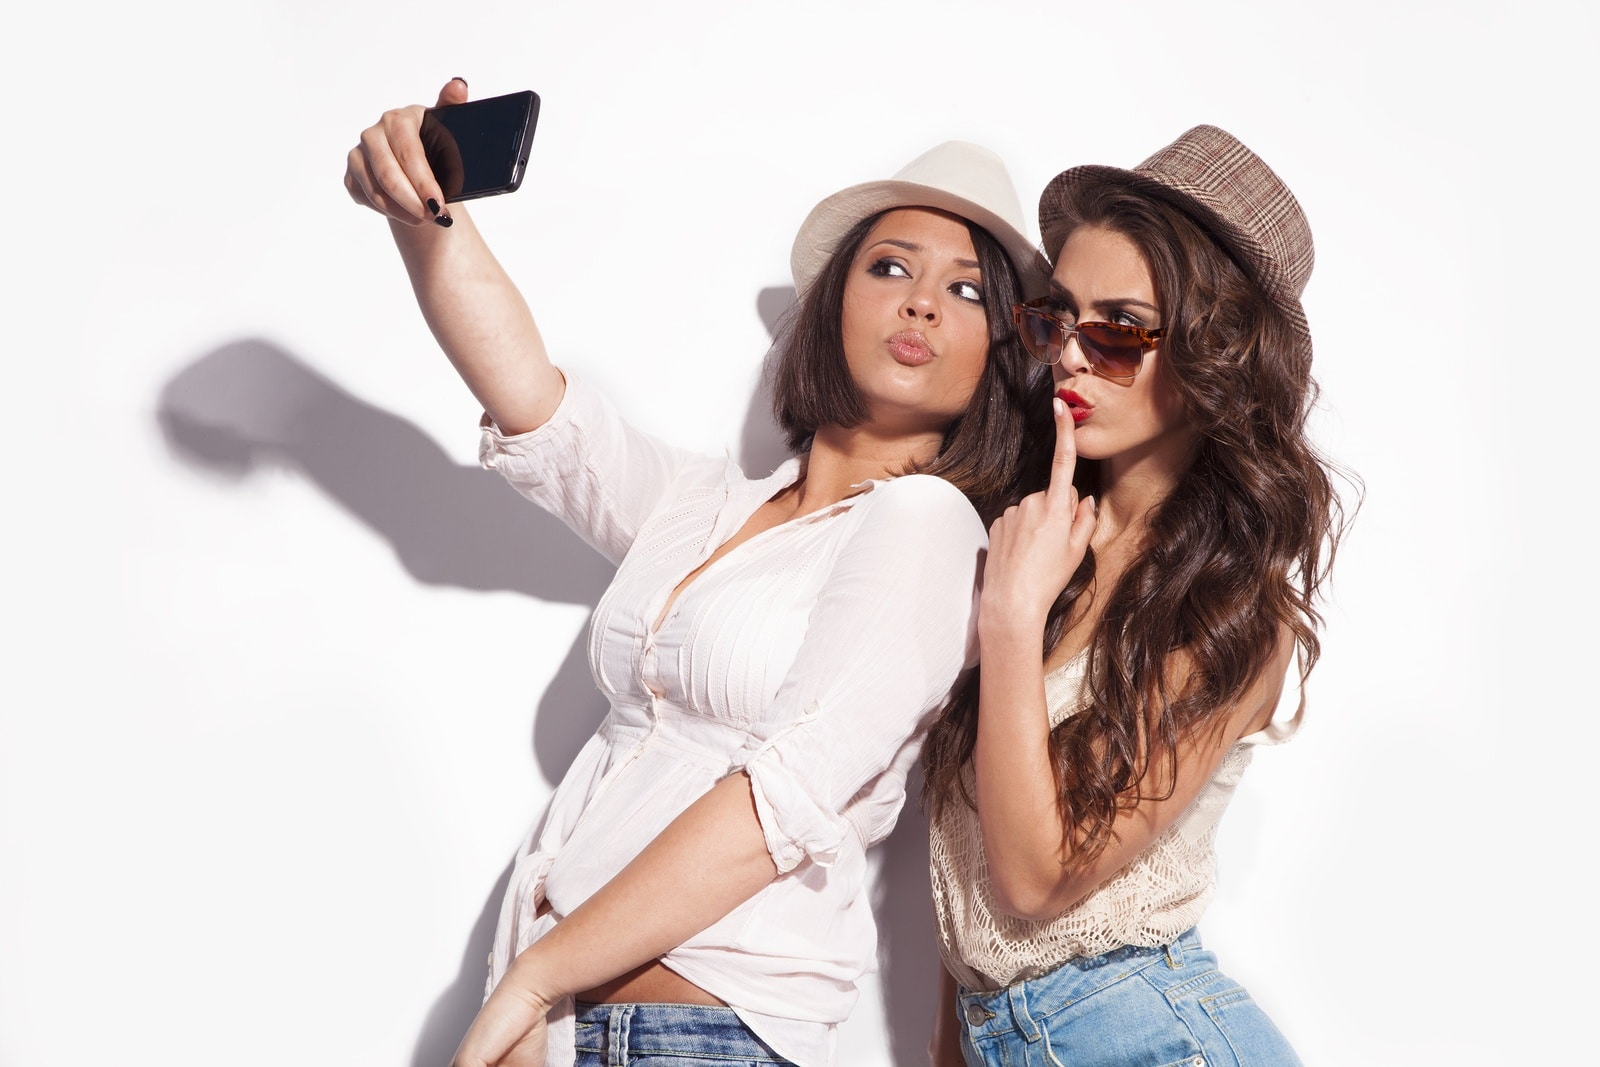 taking a selfie with a friend